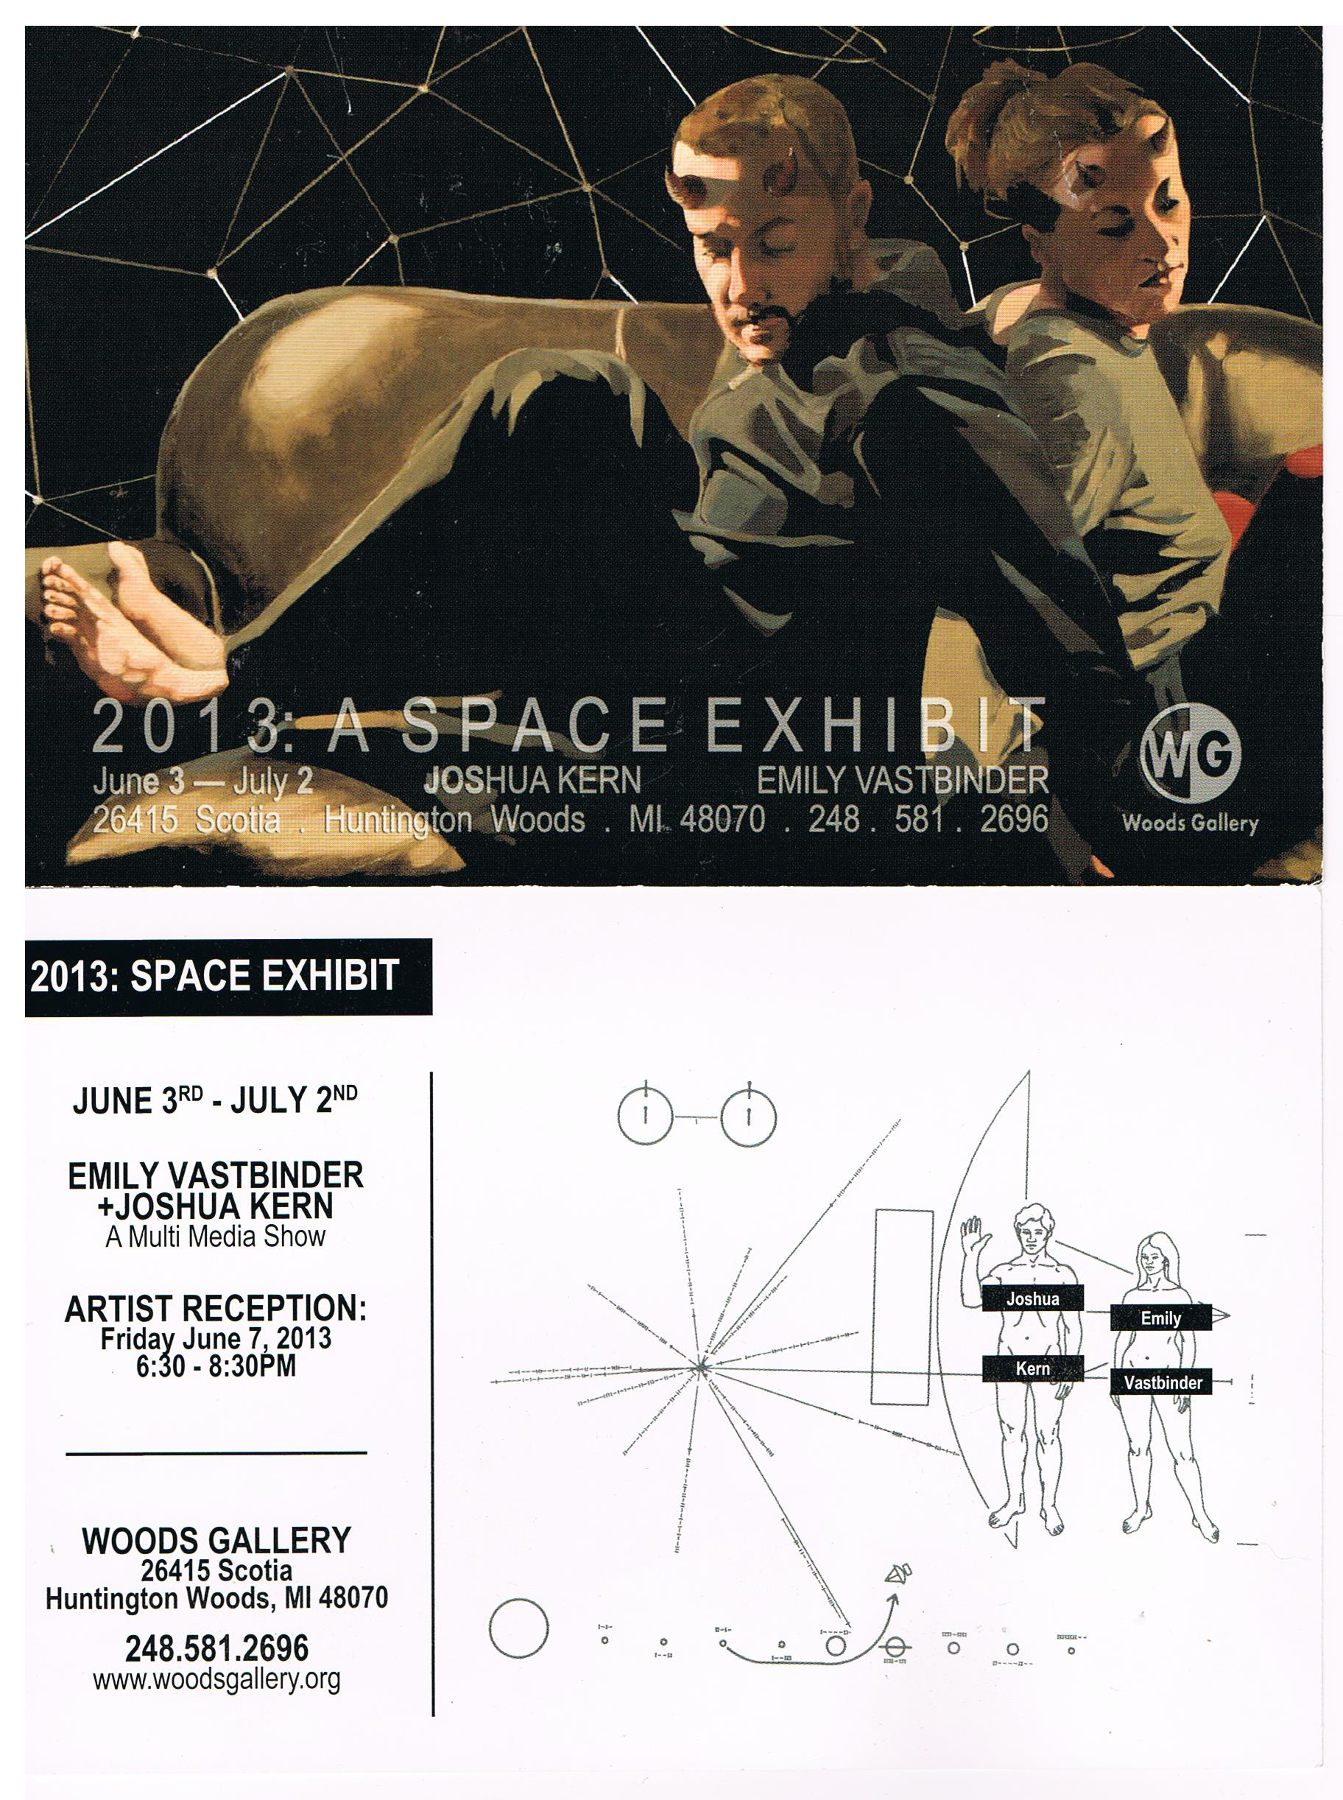 2013: A Space Exhibit , at the Woods Gallery, Huntington Woods MI